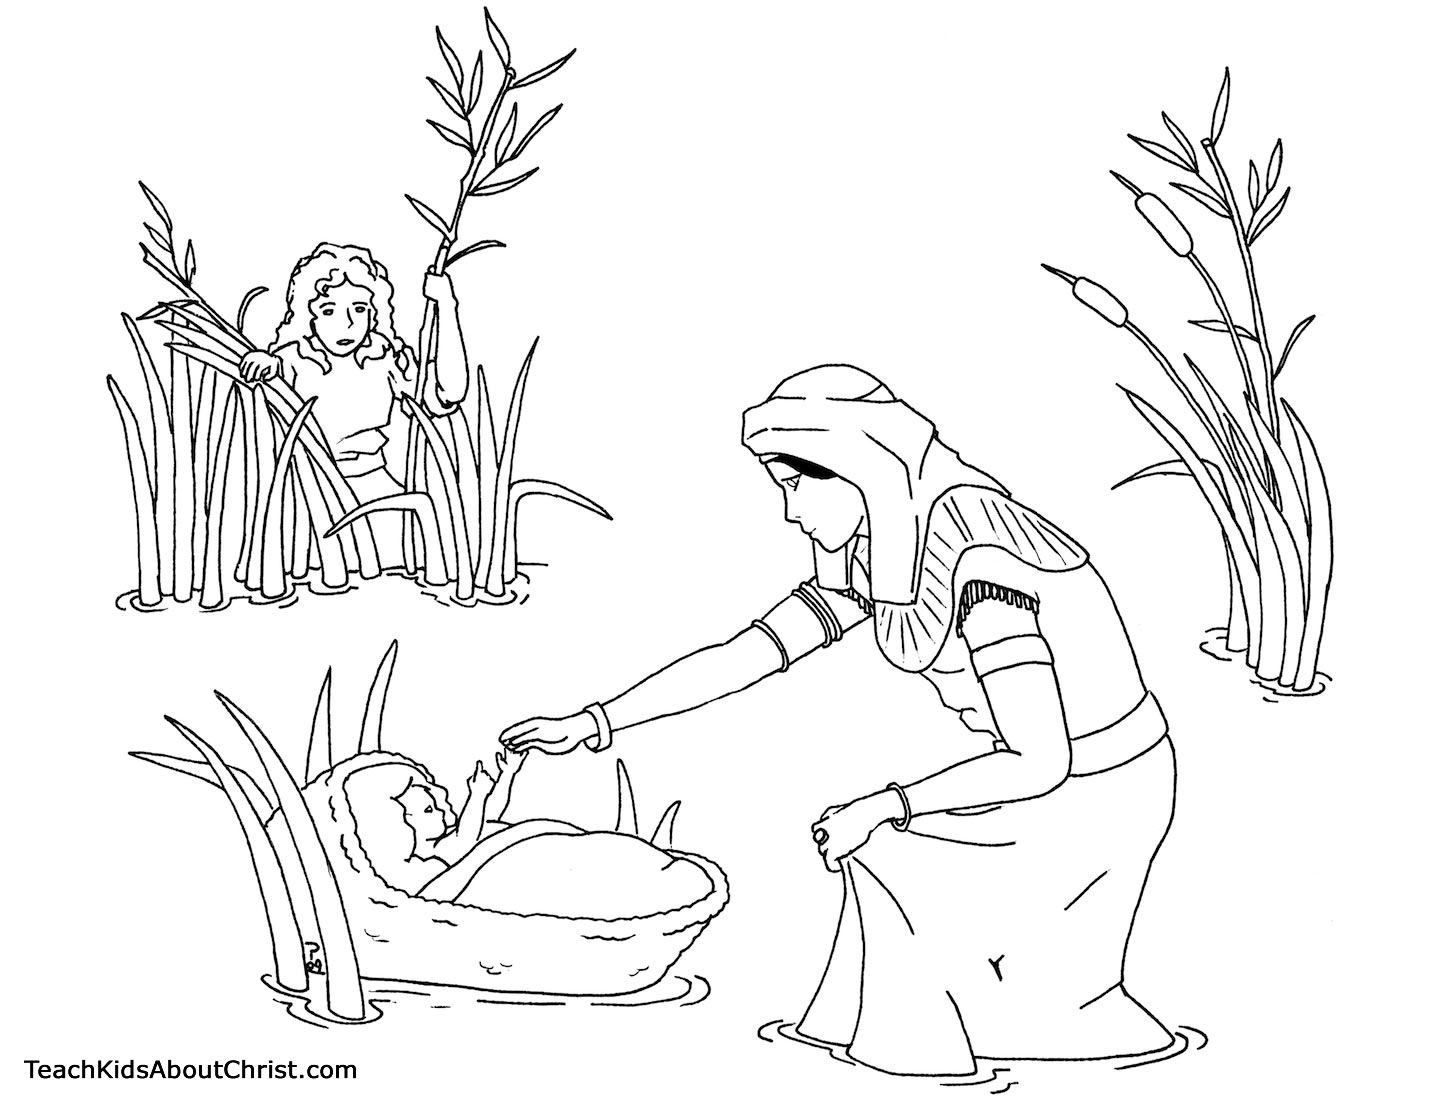 Free bible story coloring pages for kids - Coloring Page Of Baby Moses Basket On The Picture And Then Print It You